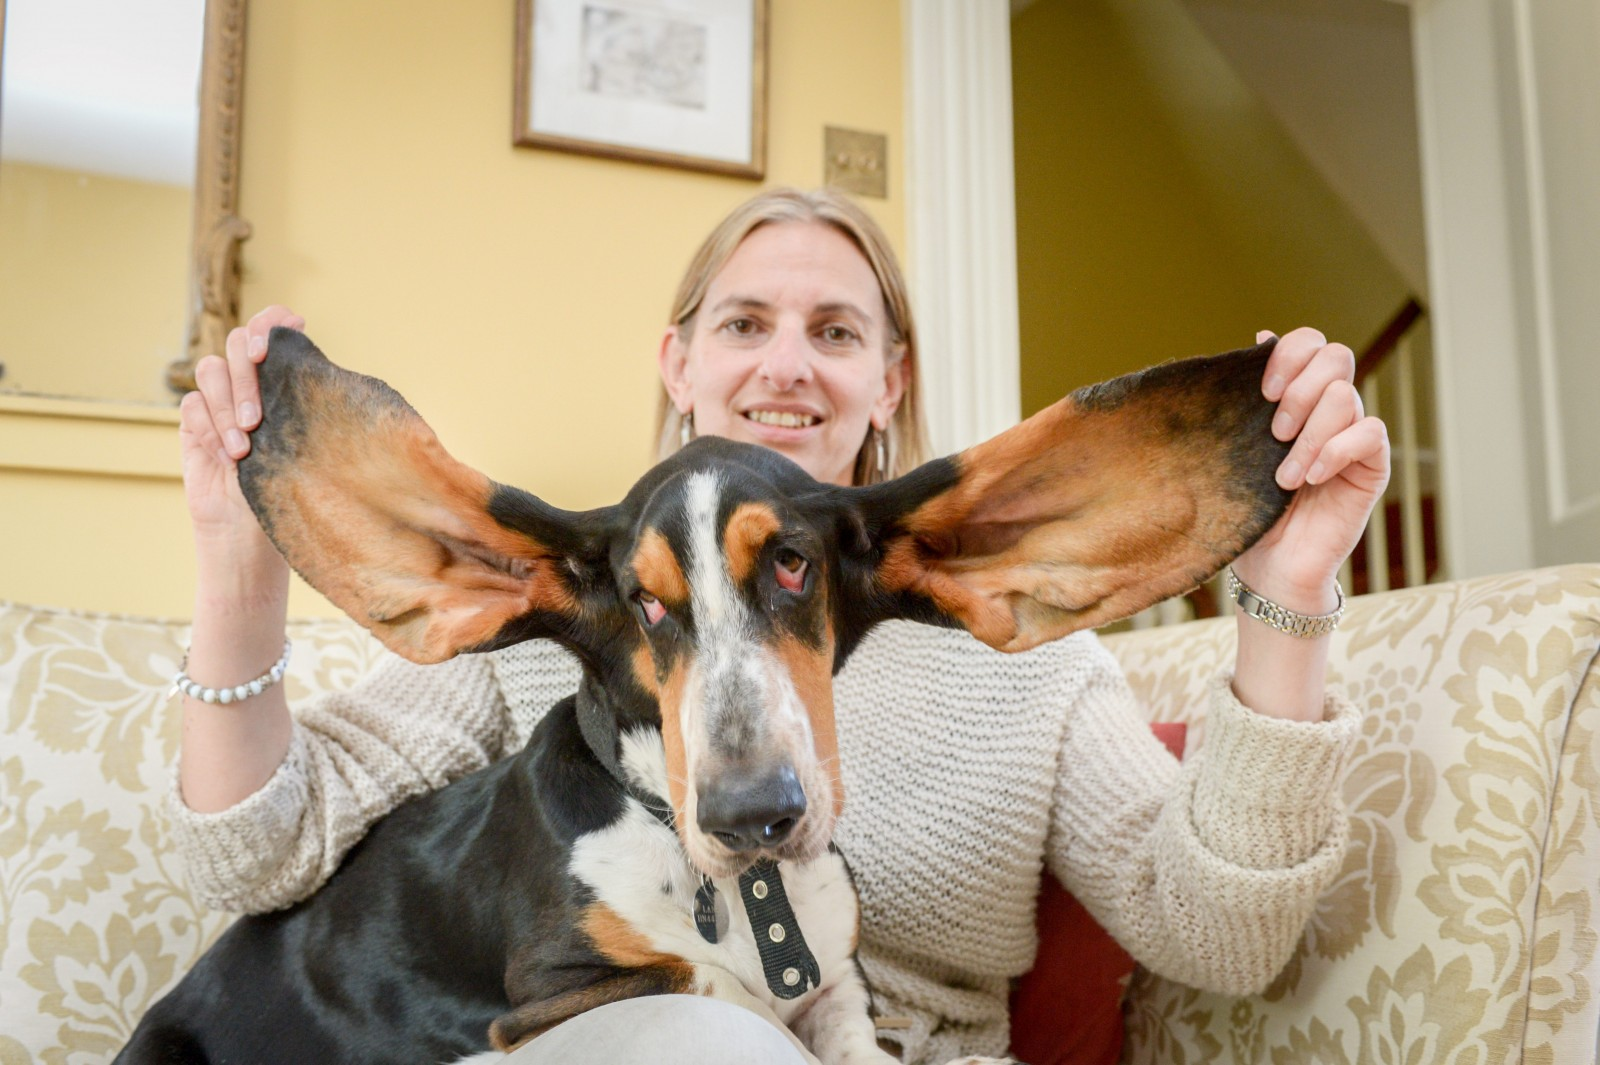 Basset Hound survives fall from third-floor window thanks to his huge EARS